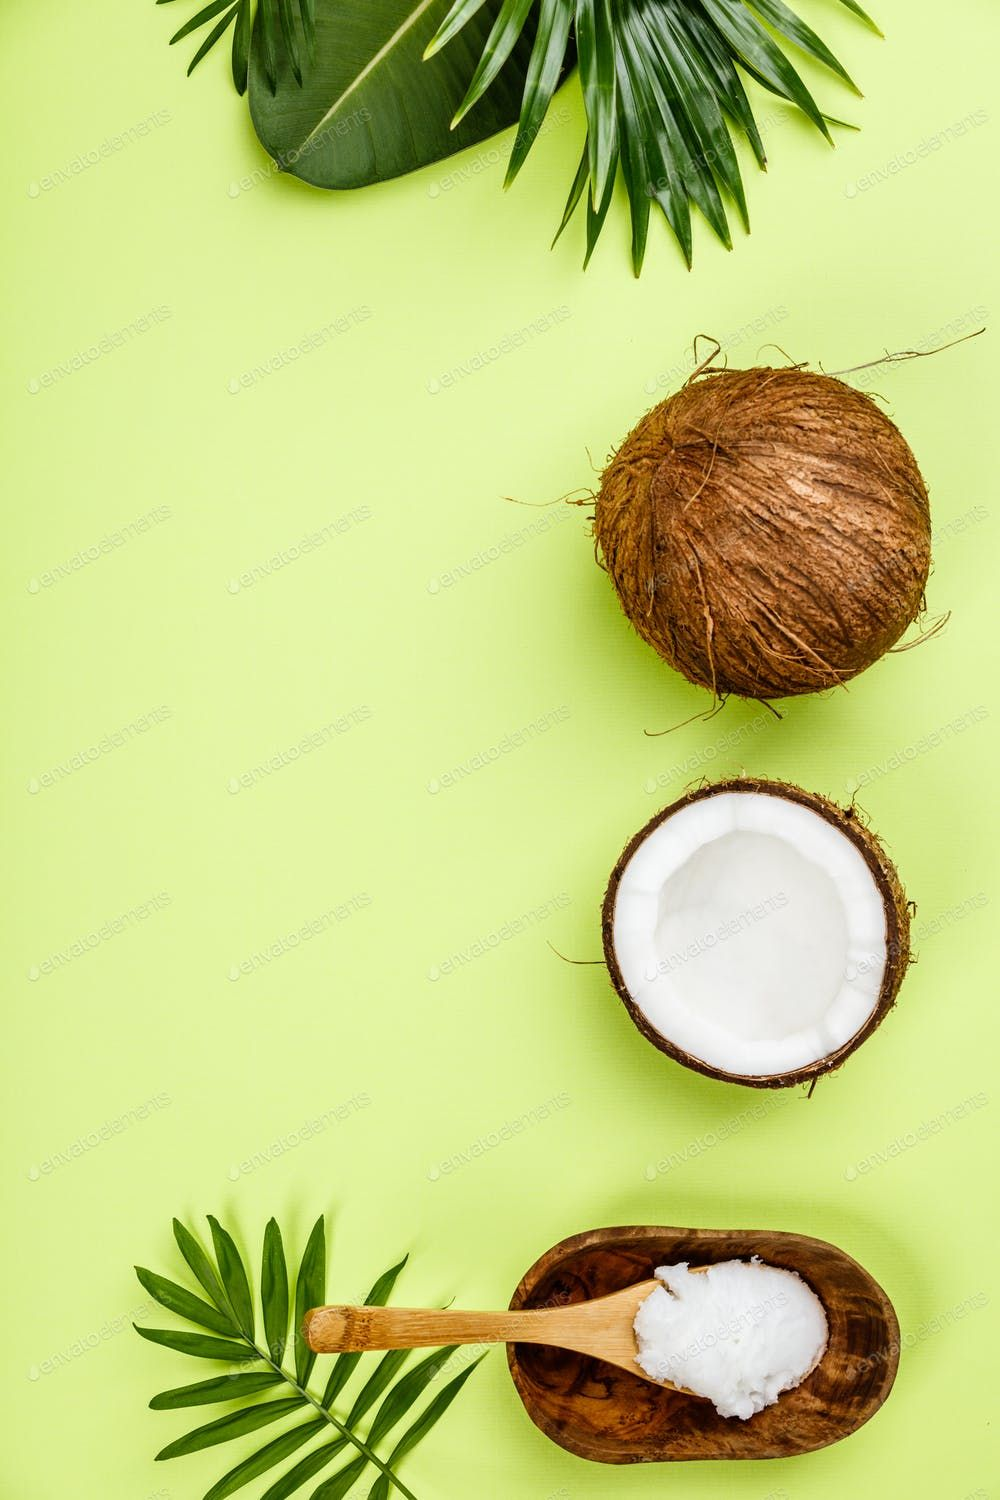 Image Result For Coconut Watercolor Coconut Watercolor Graphic